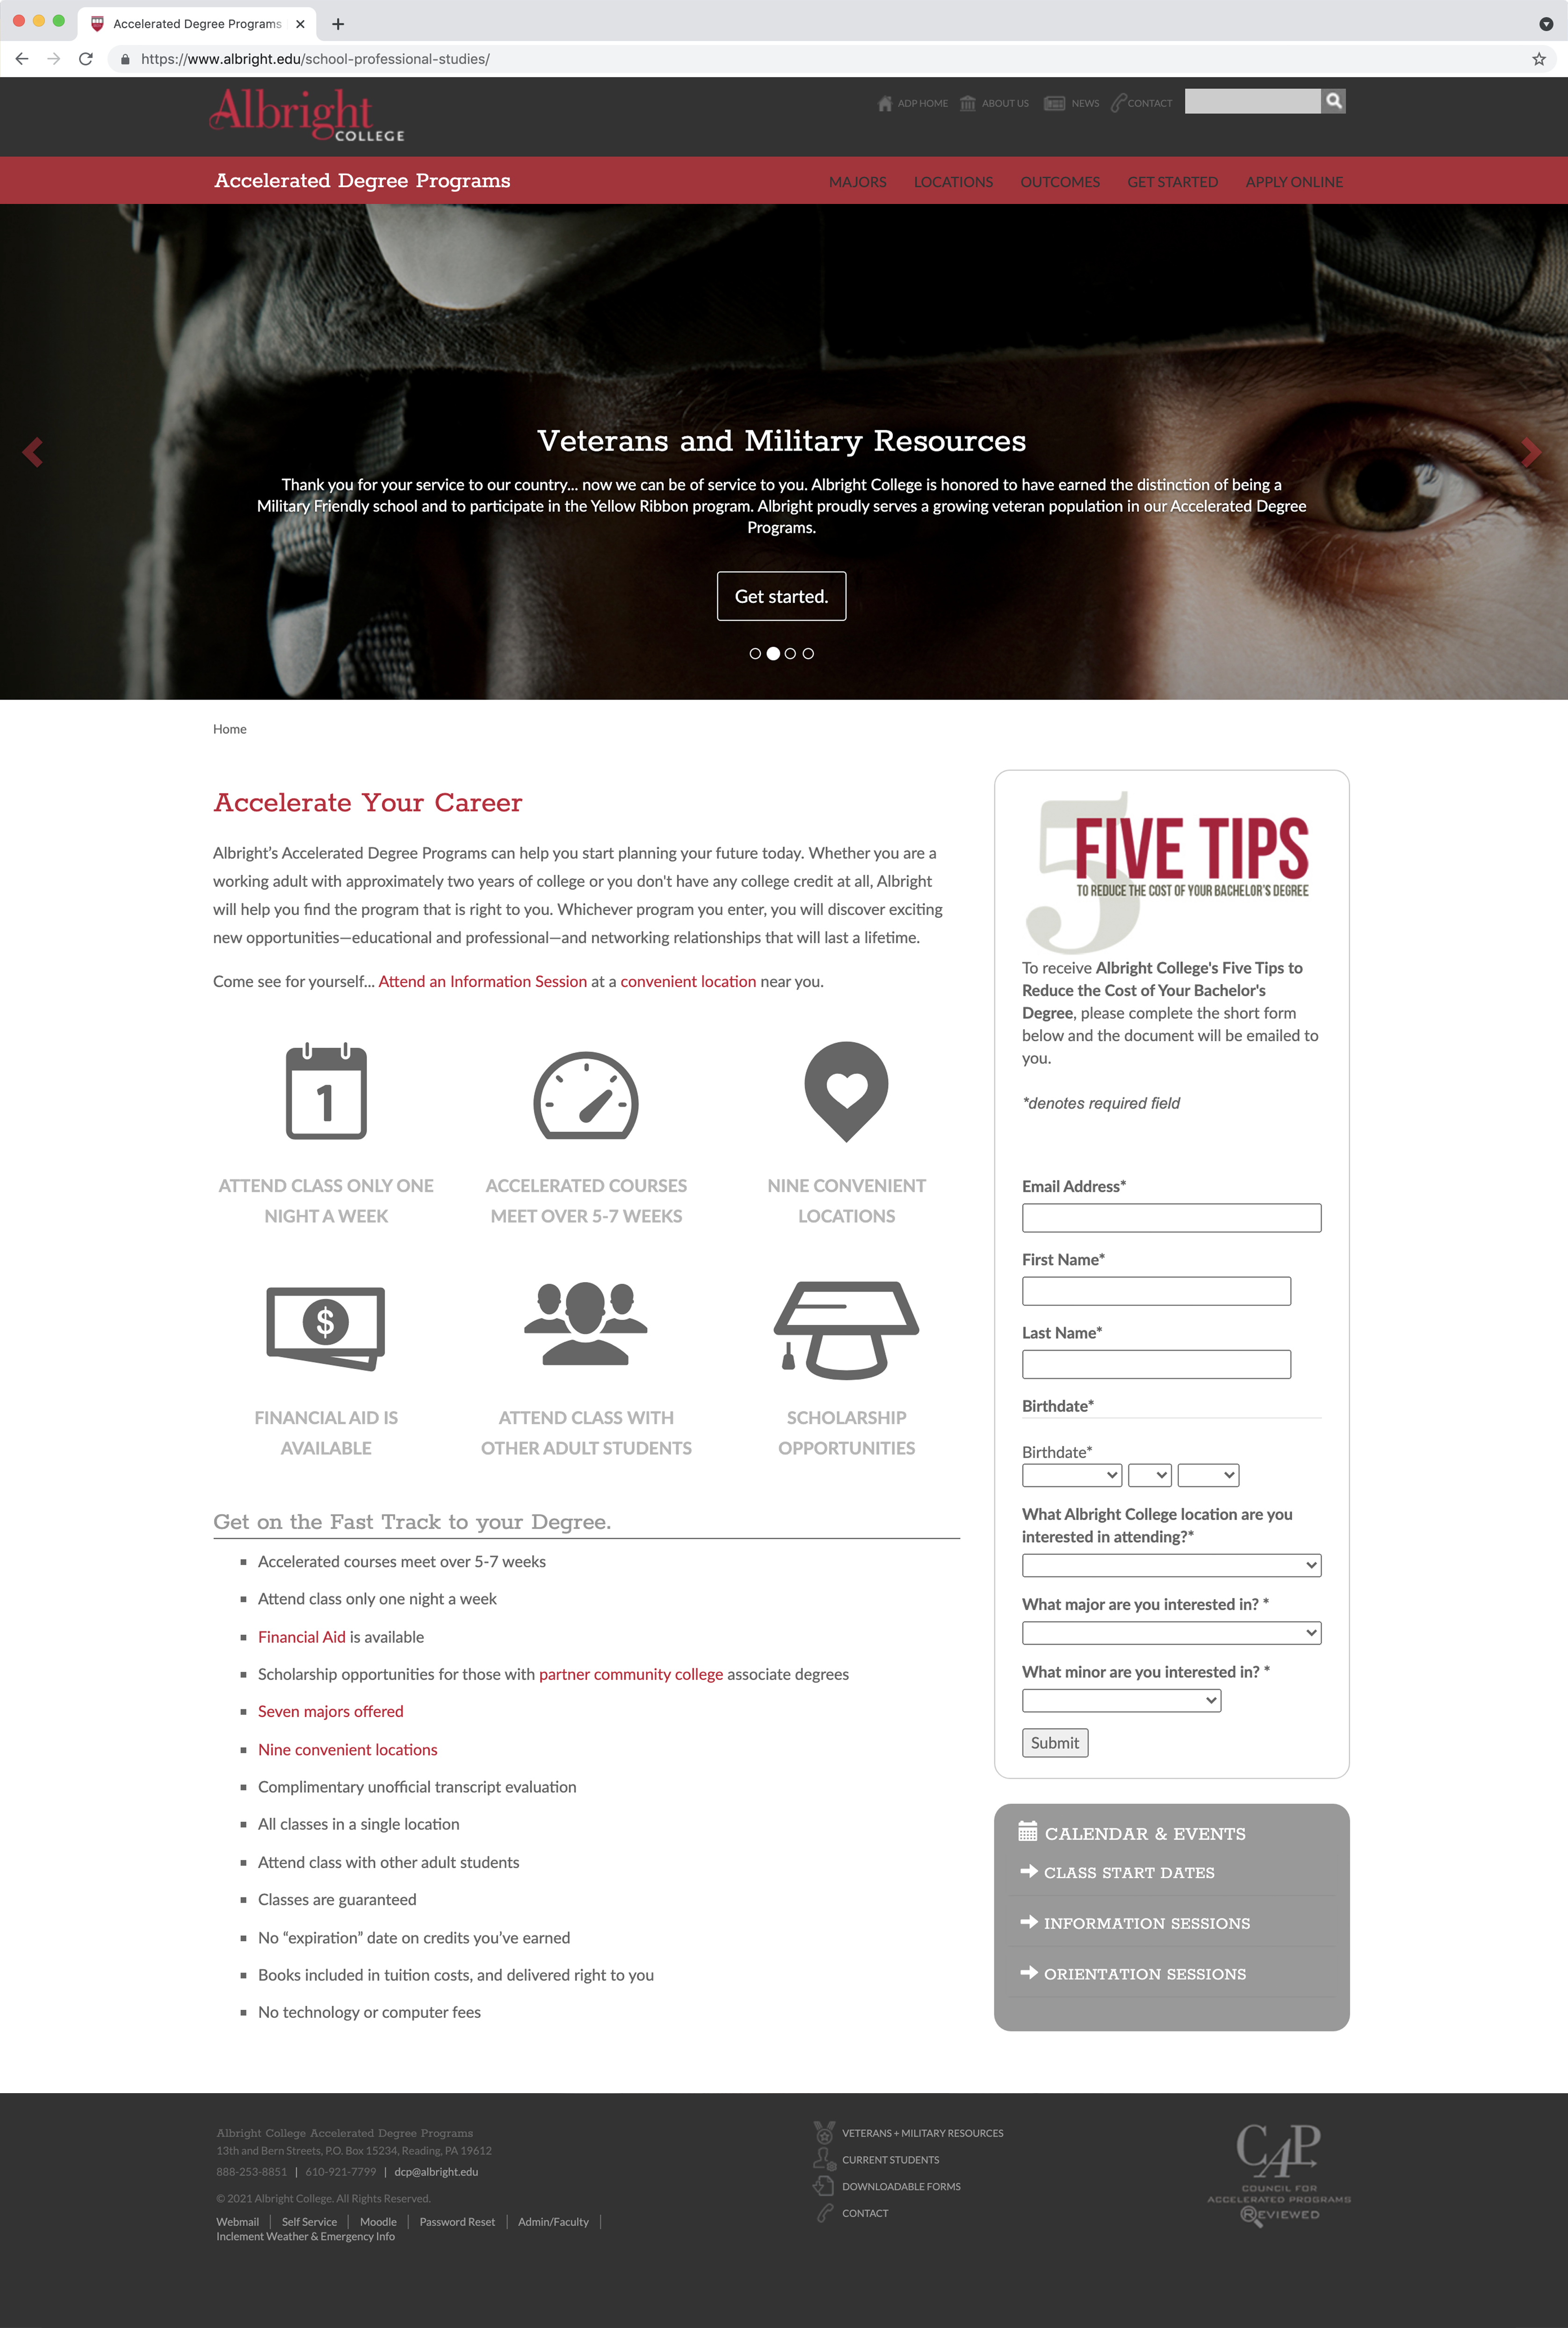 Albright College ADP Home Page